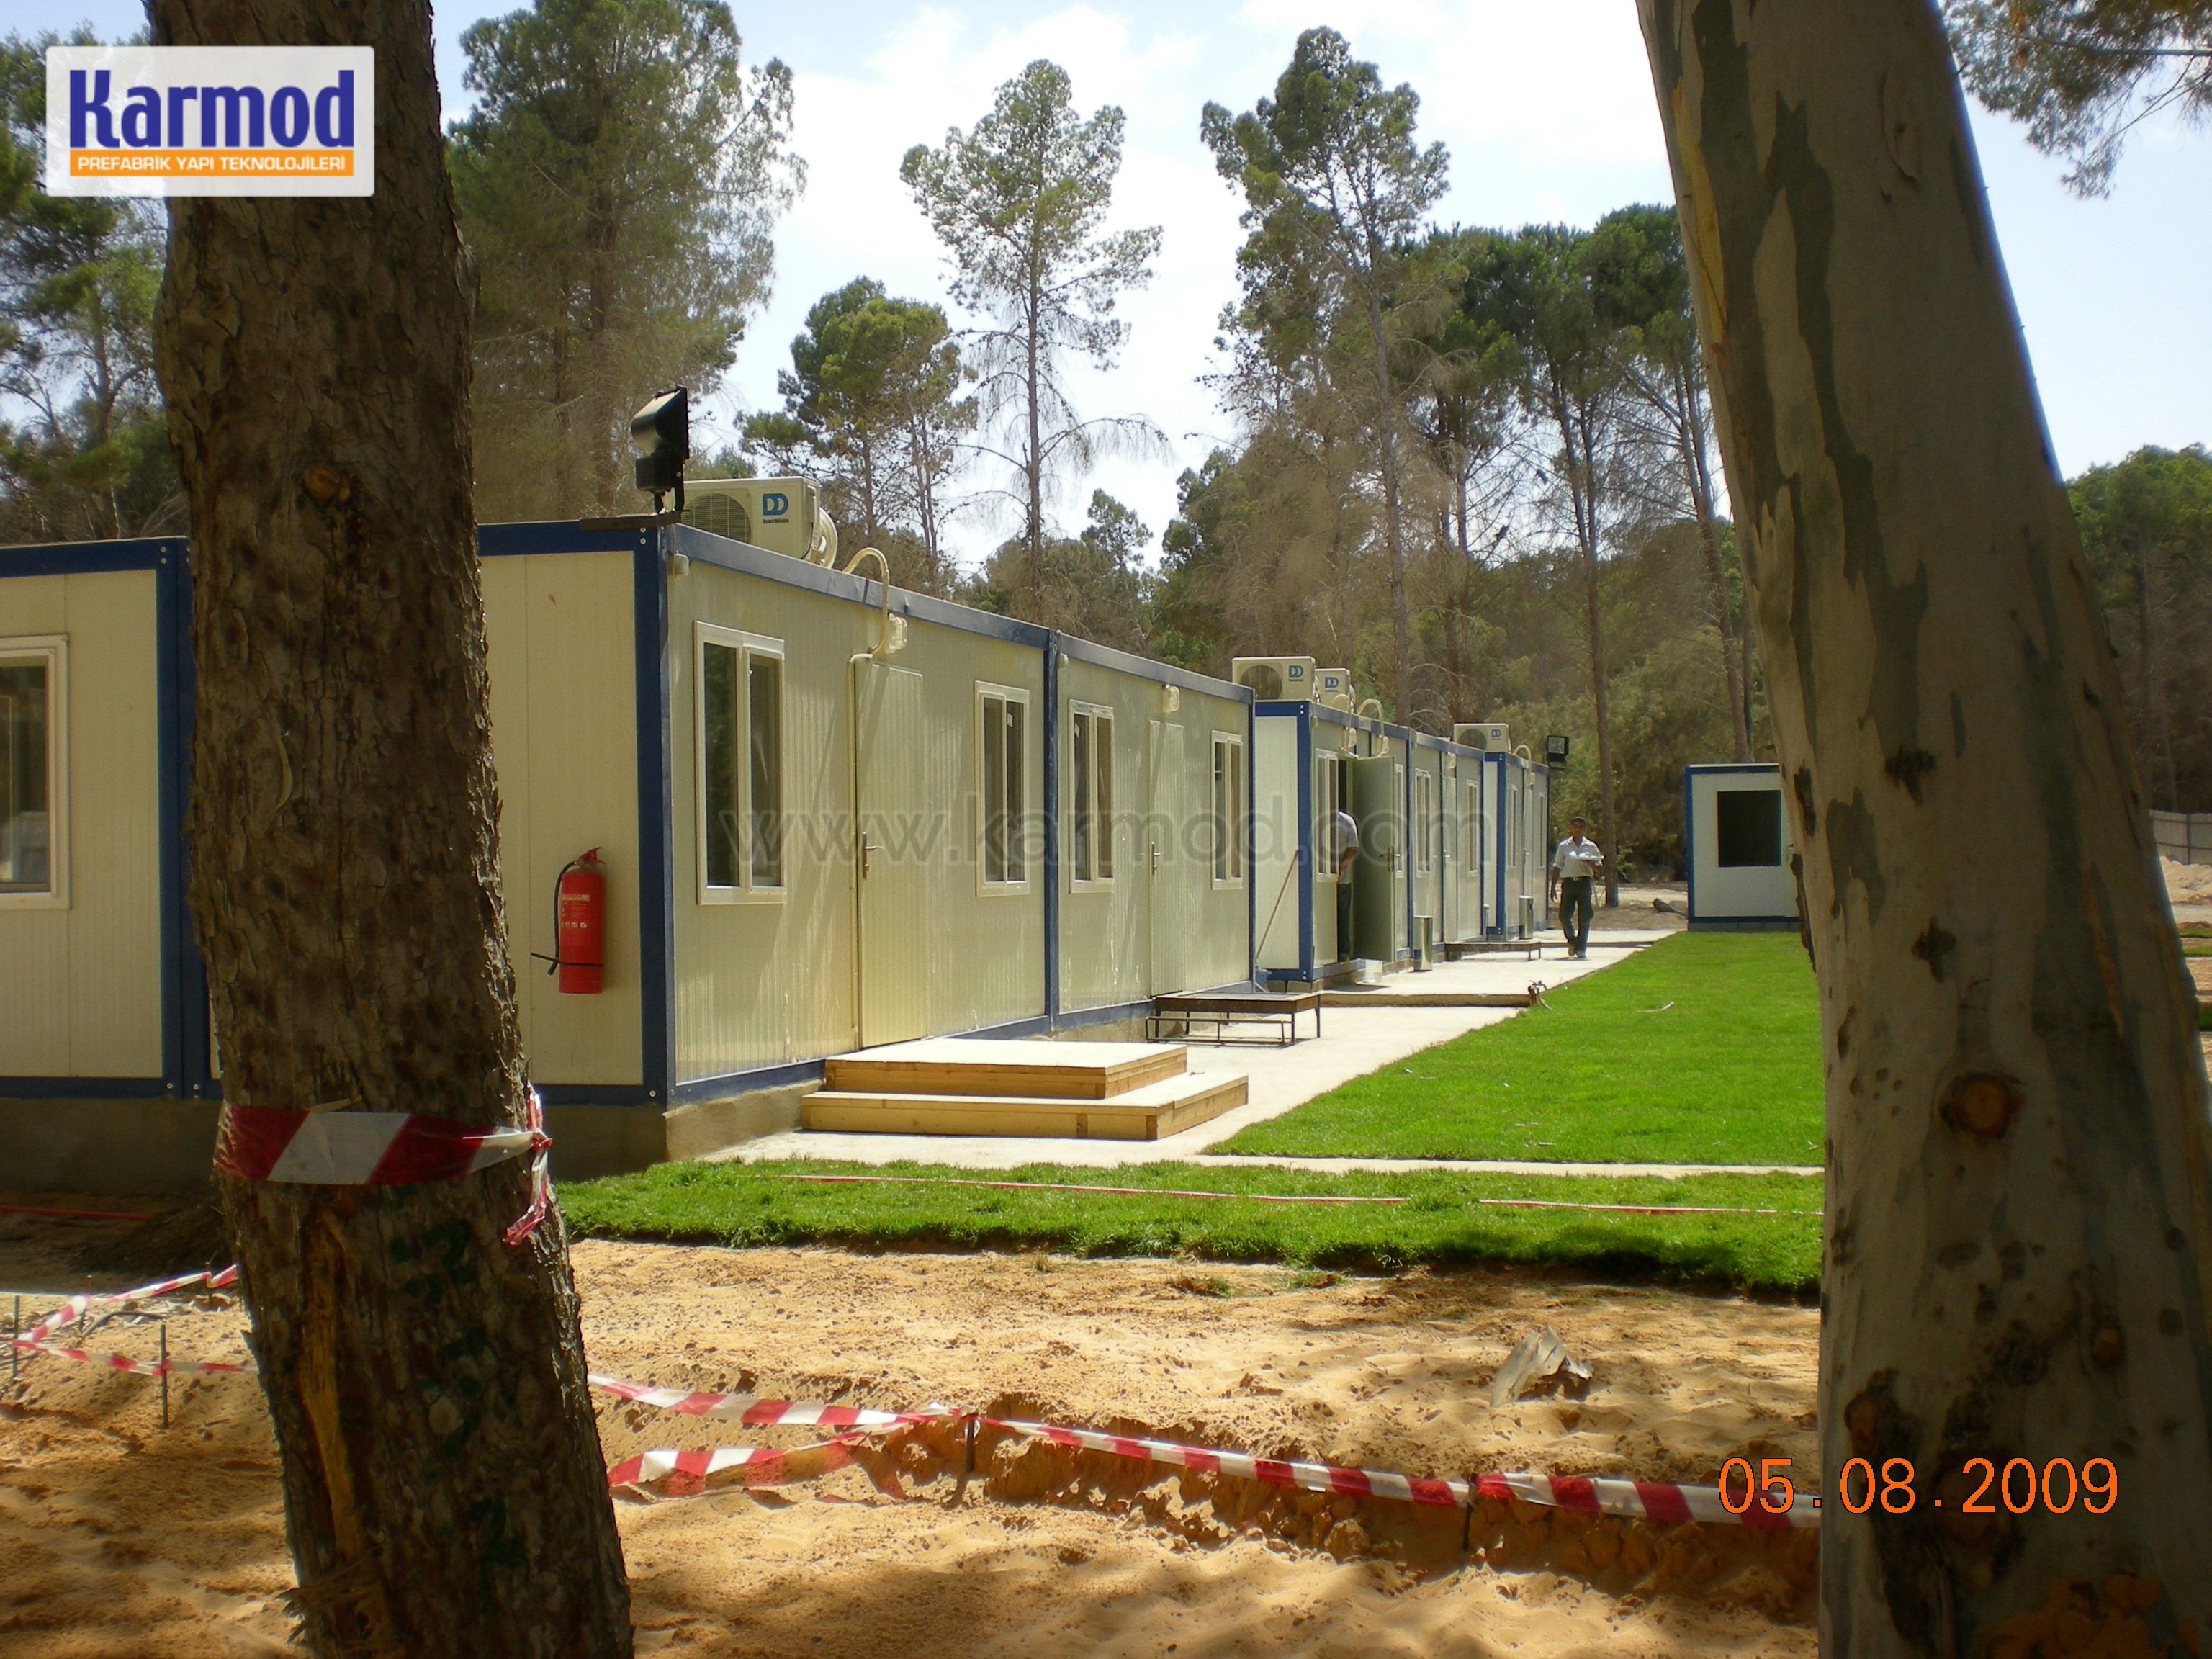 constructs pre-fabricated mining camps